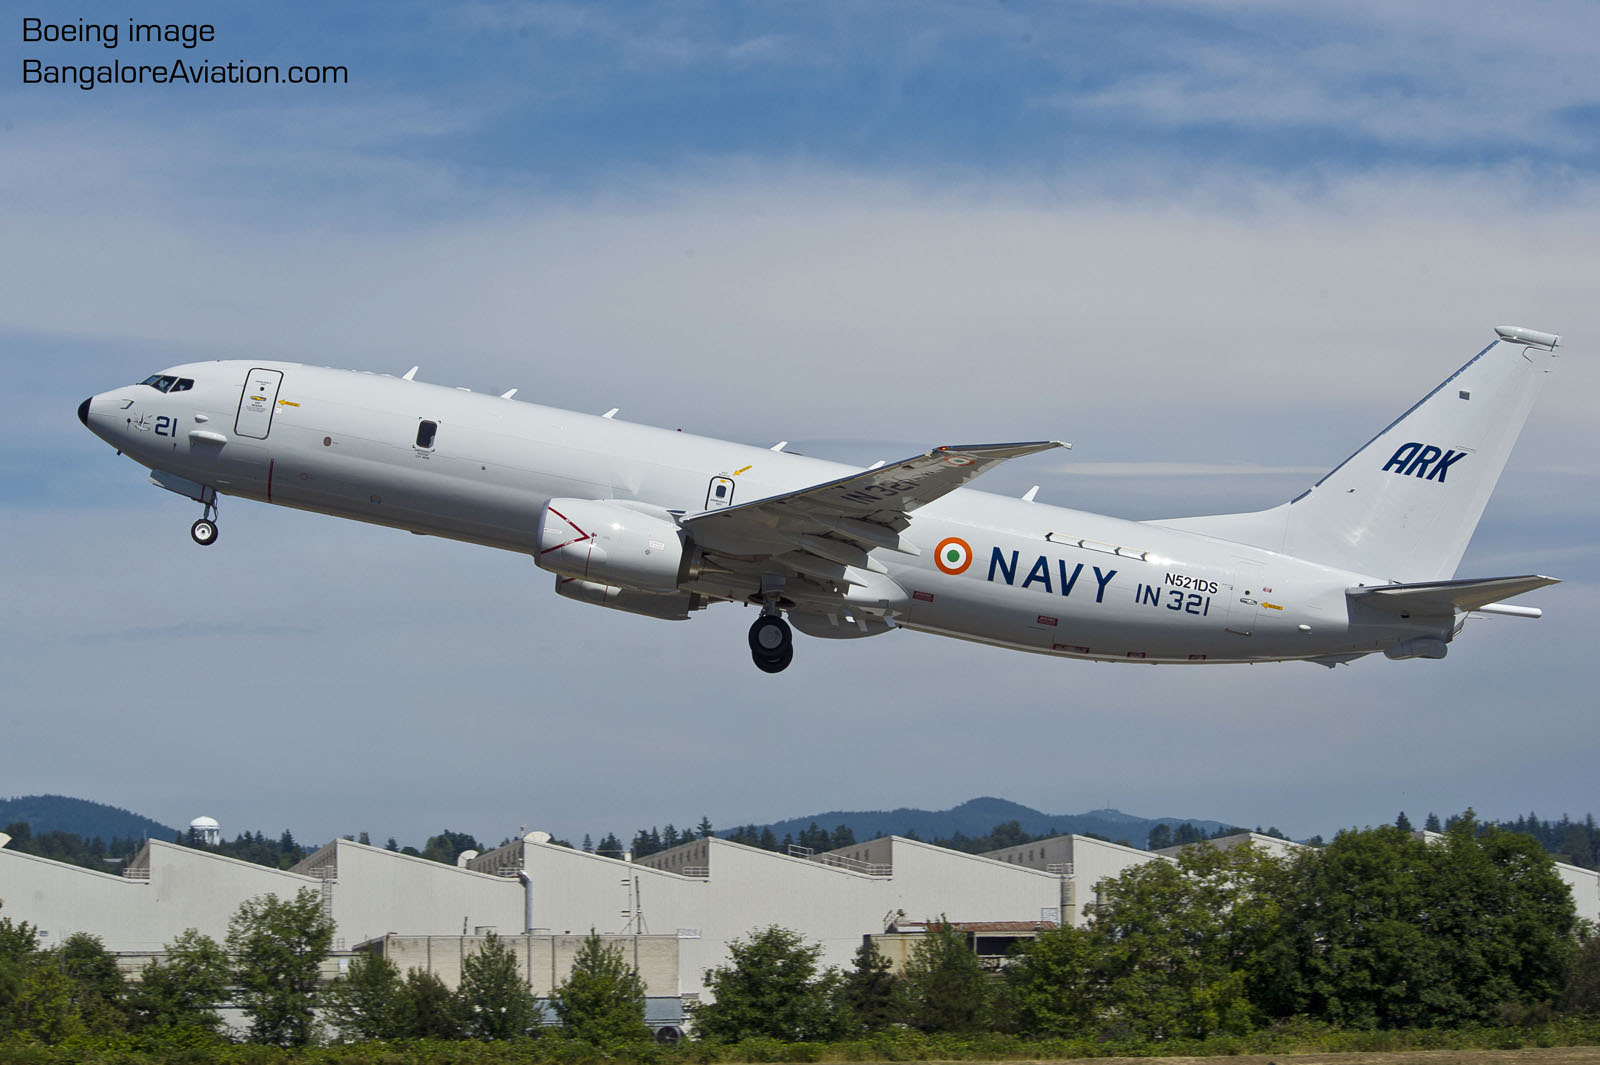 Indian Navy Boeing P-8I